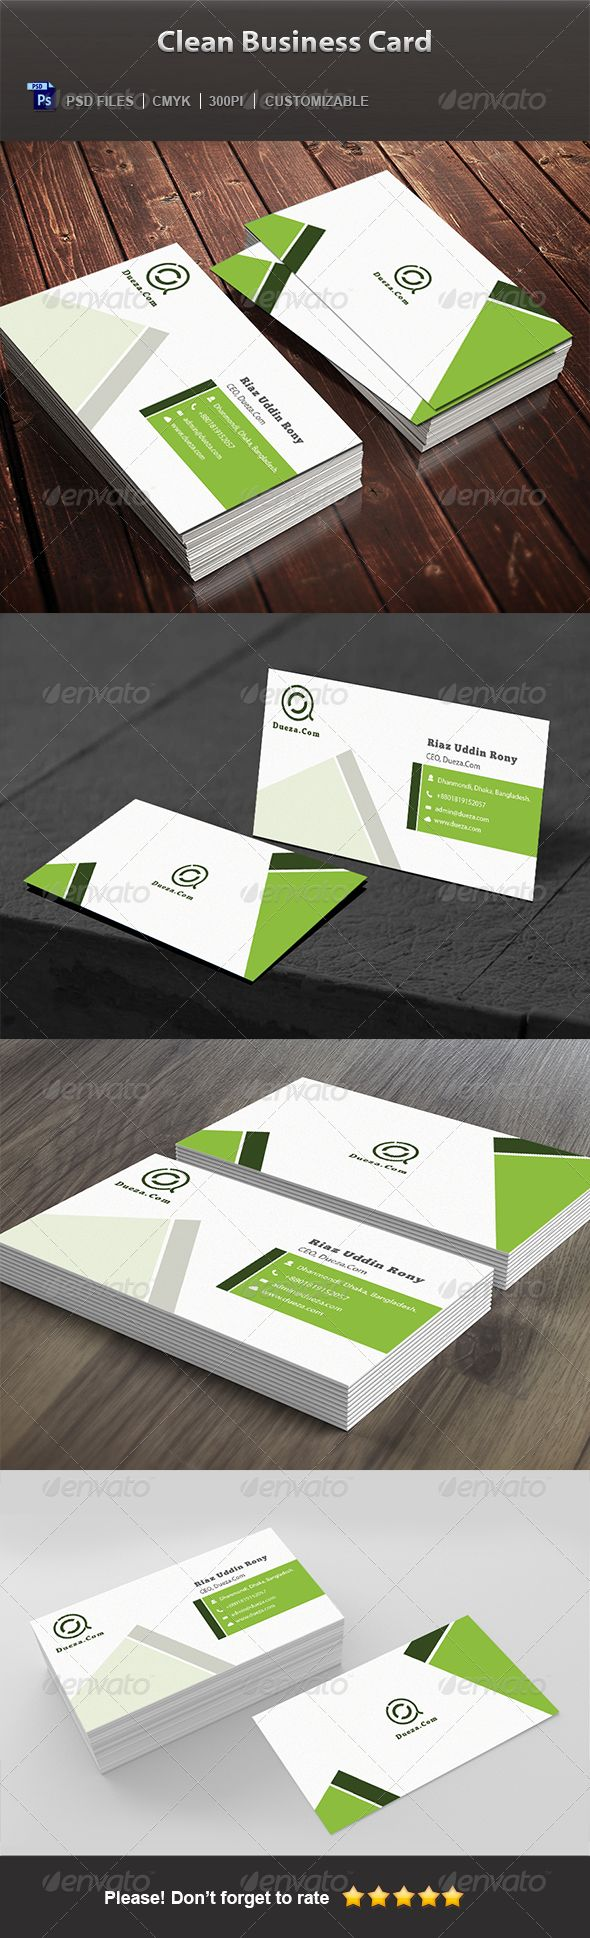 Best 25 cleaning business cards ideas on pinterest visit cards buy clean business card by graphicsdesignstudio on graphicriver clean business card is a simple and eye catching professional business card magicingreecefo Gallery